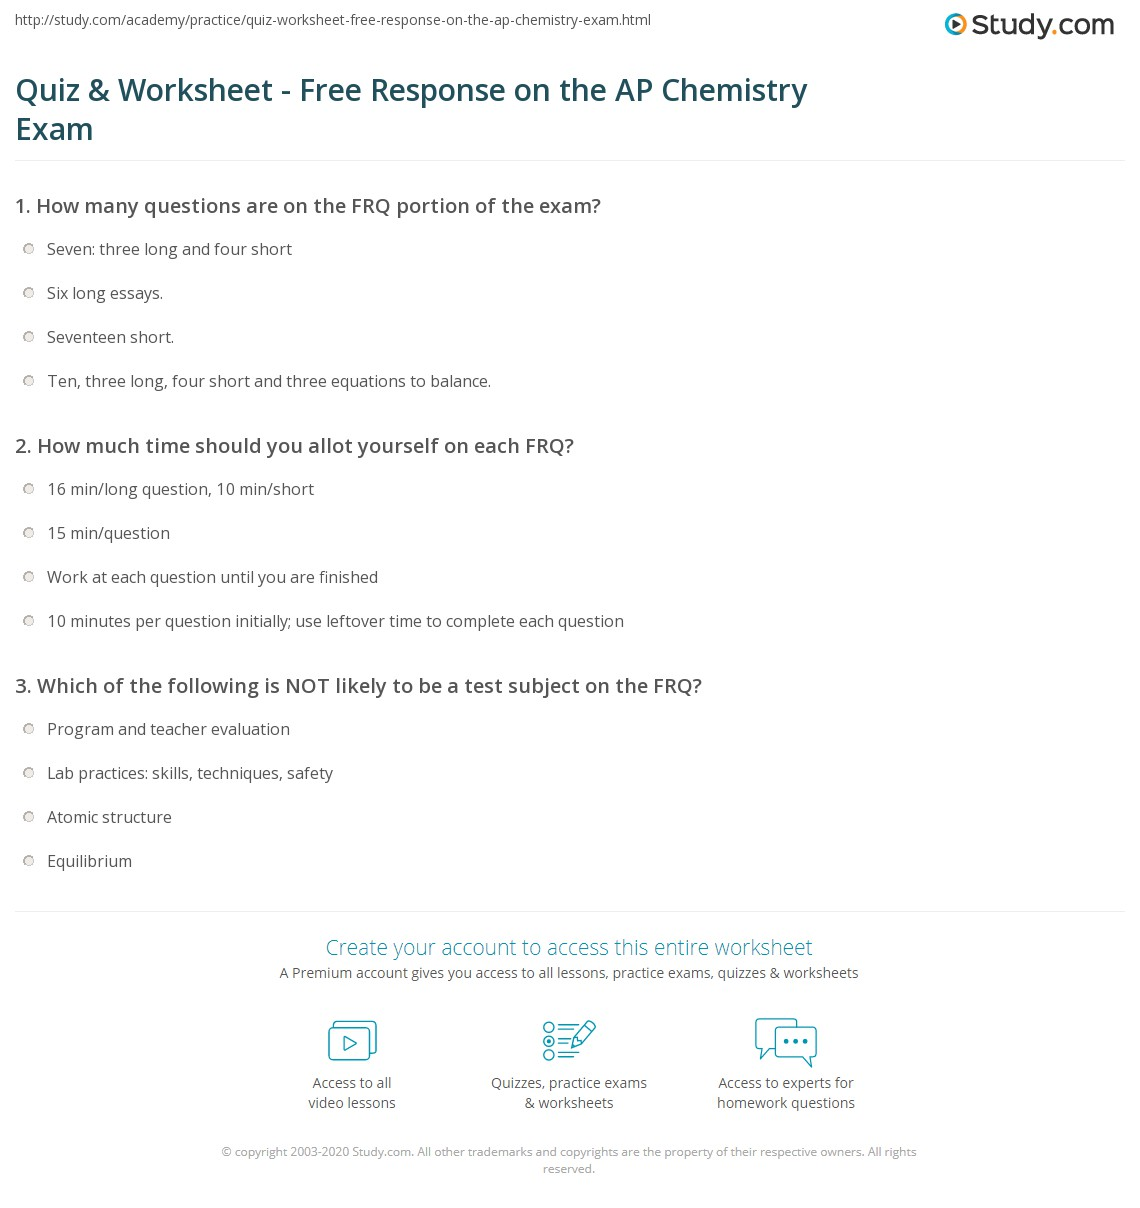 Worksheets Ap Chemistry Worksheets quiz worksheet free response on the ap chemistry exam study com print how to master section of worksheet